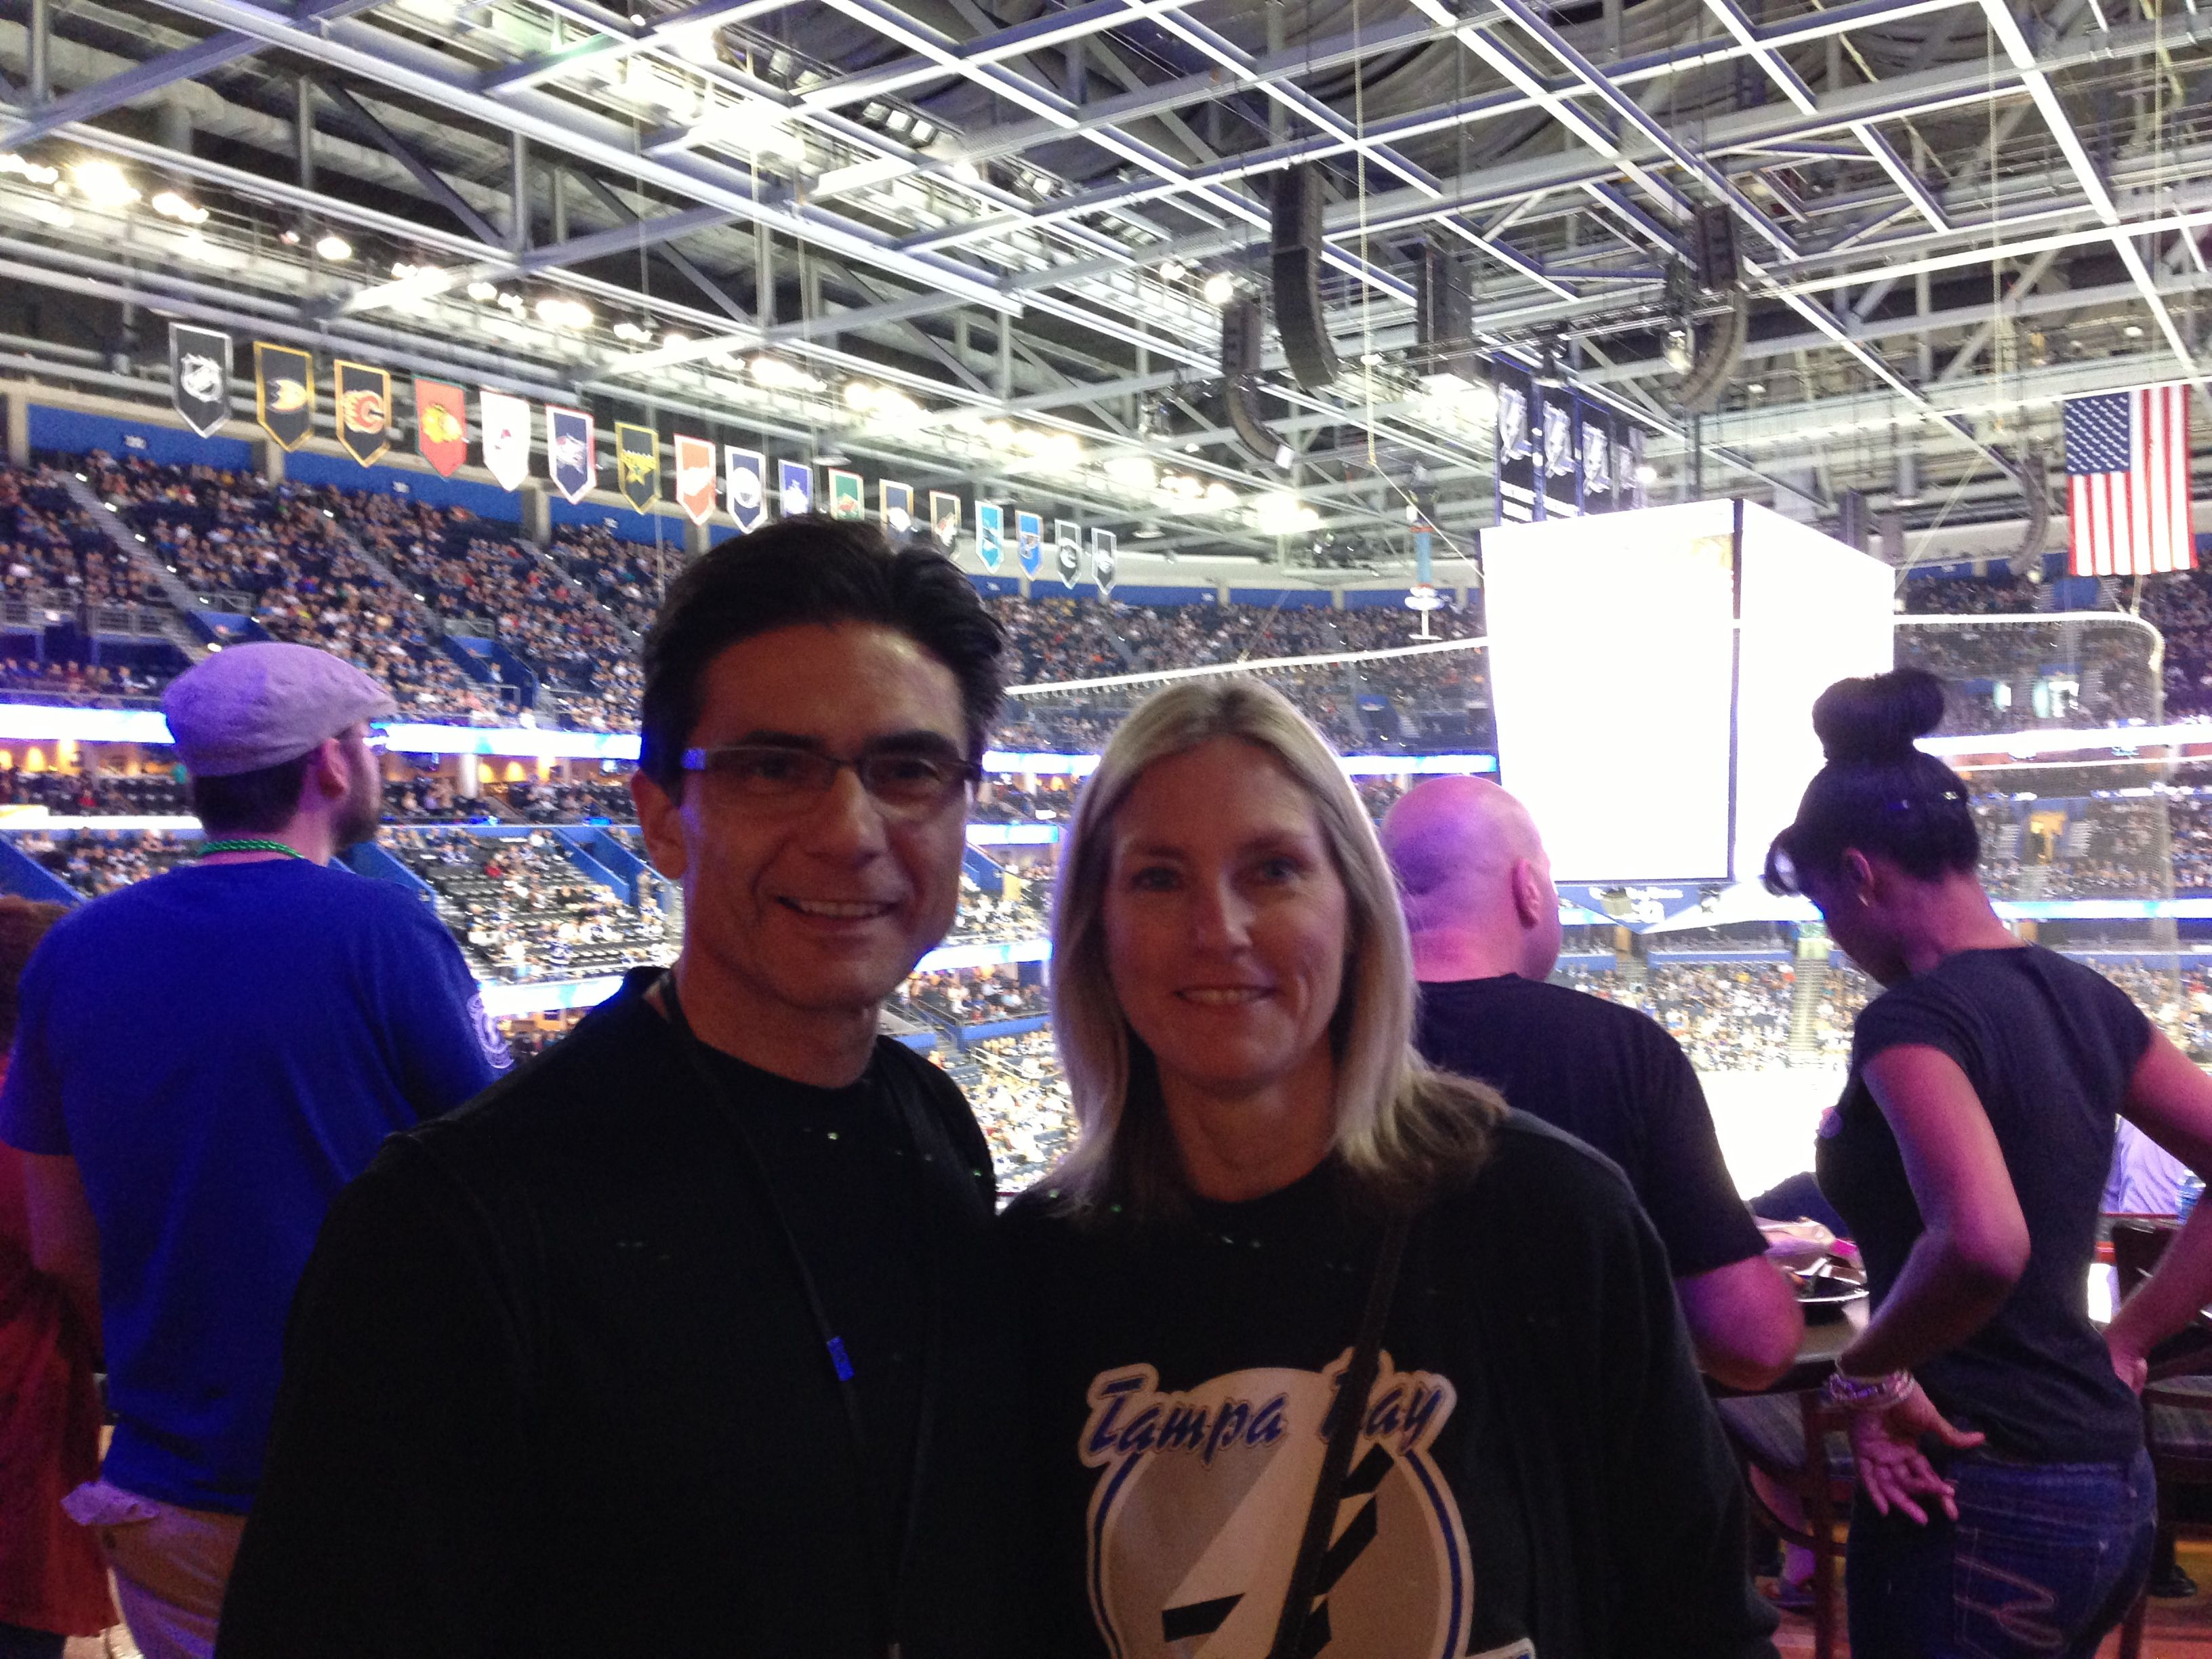 Enjoying a Lightning game with my wife.